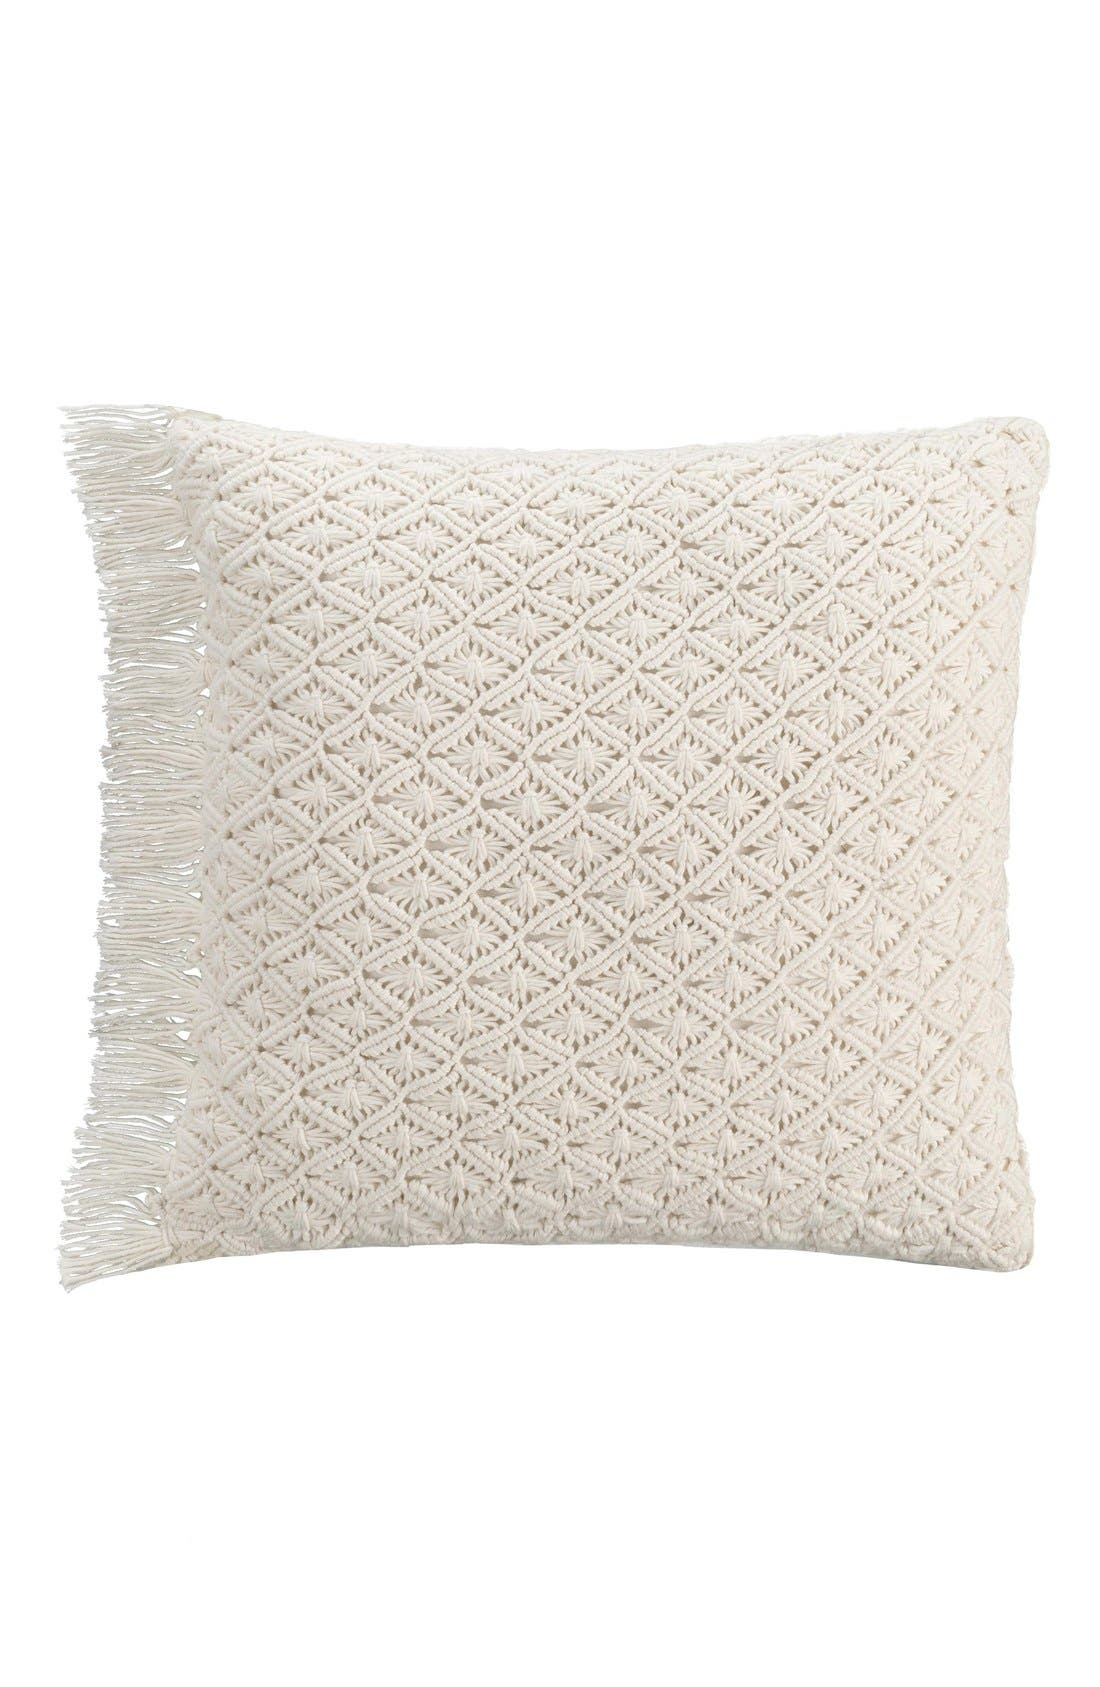 cupcakes and cashmere 'Lace Medallion' Crochet Pillow